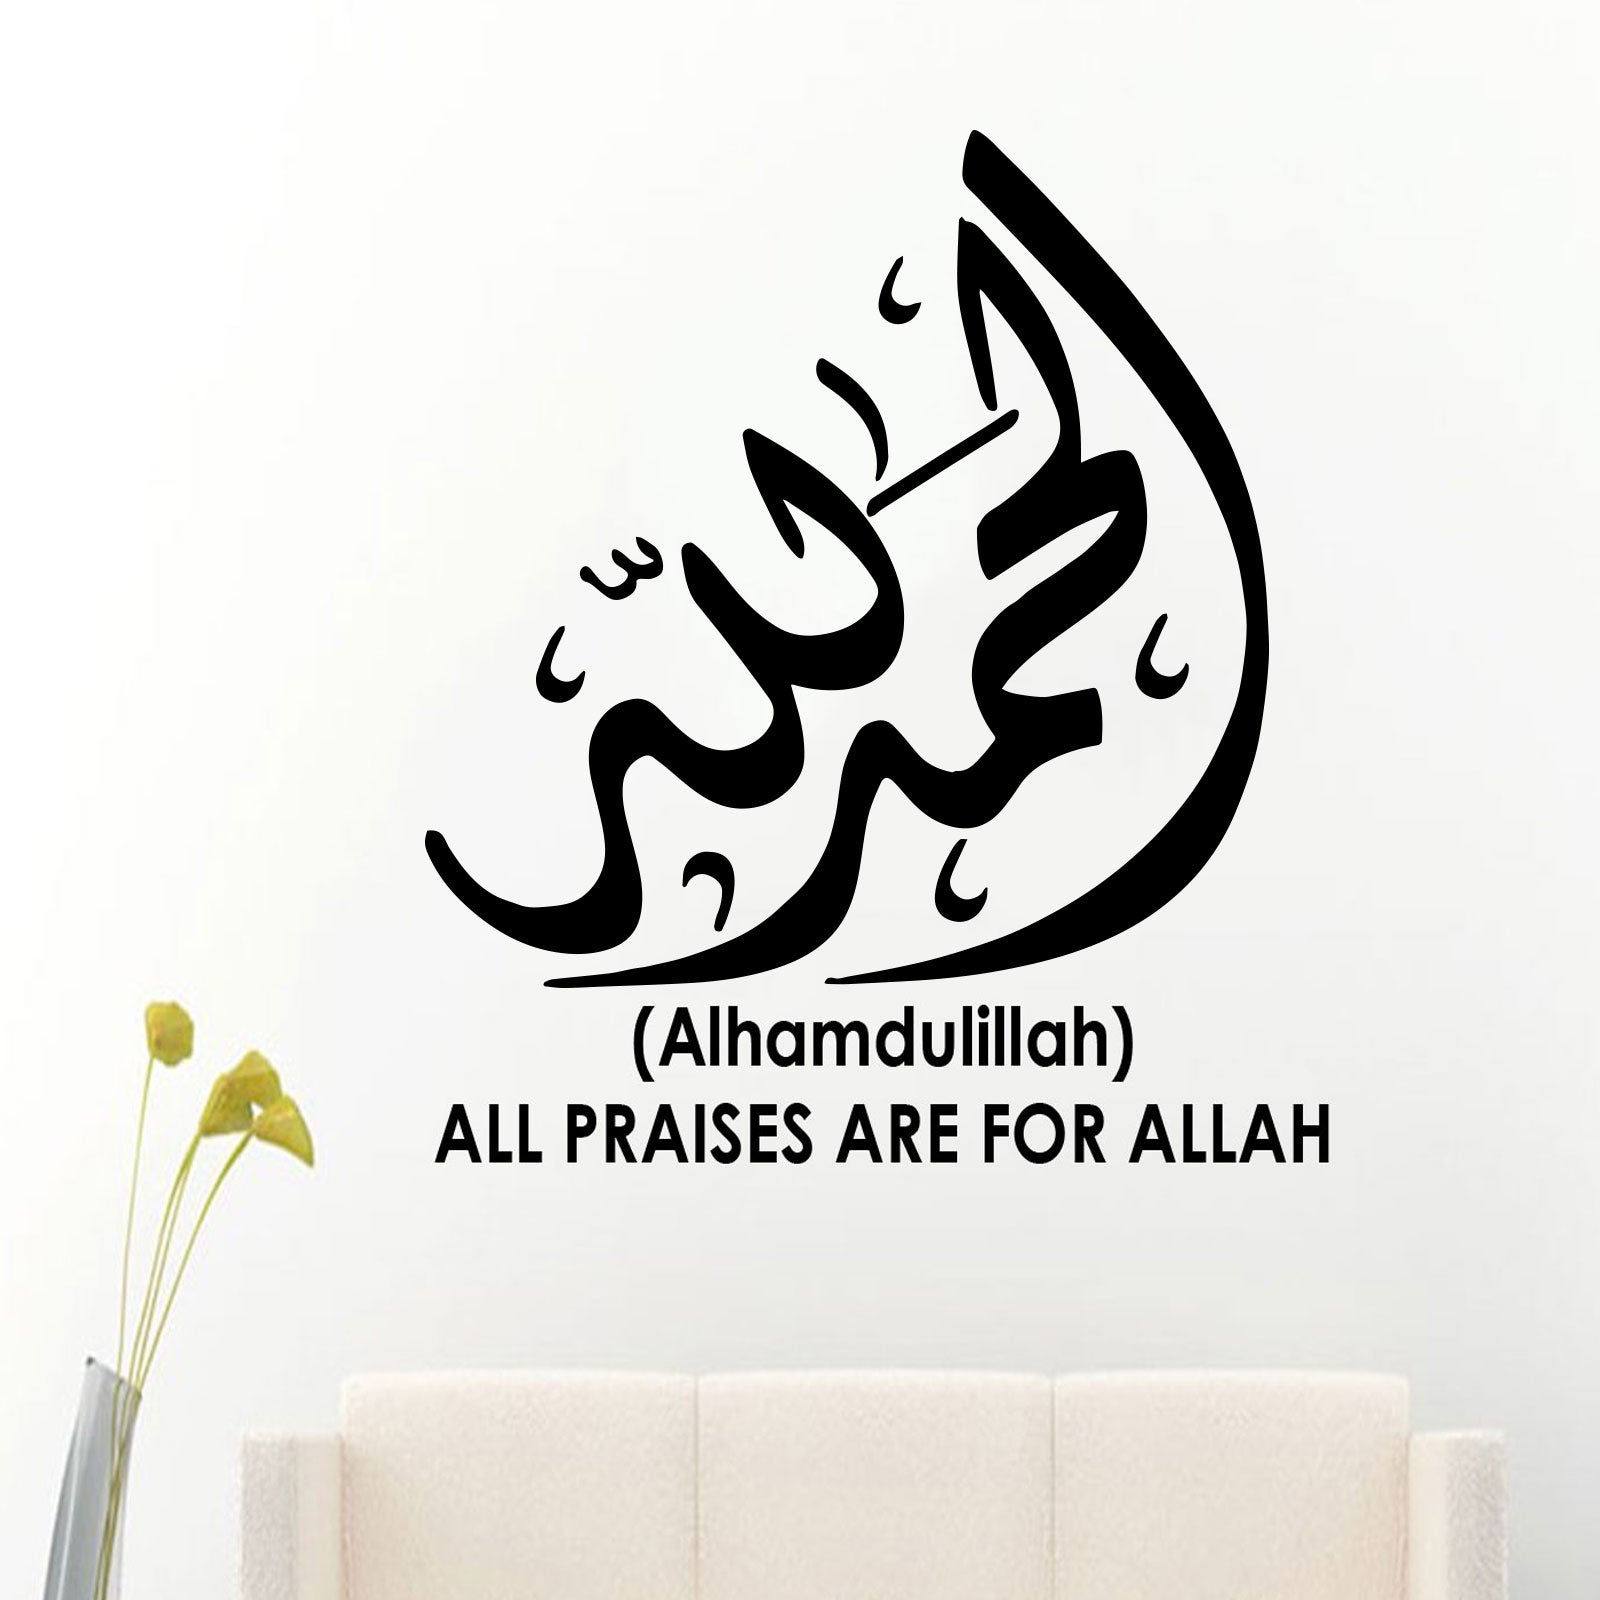 ... Alhamdulillah With English Translation Islamic Wall Art Stickers In  Black ...